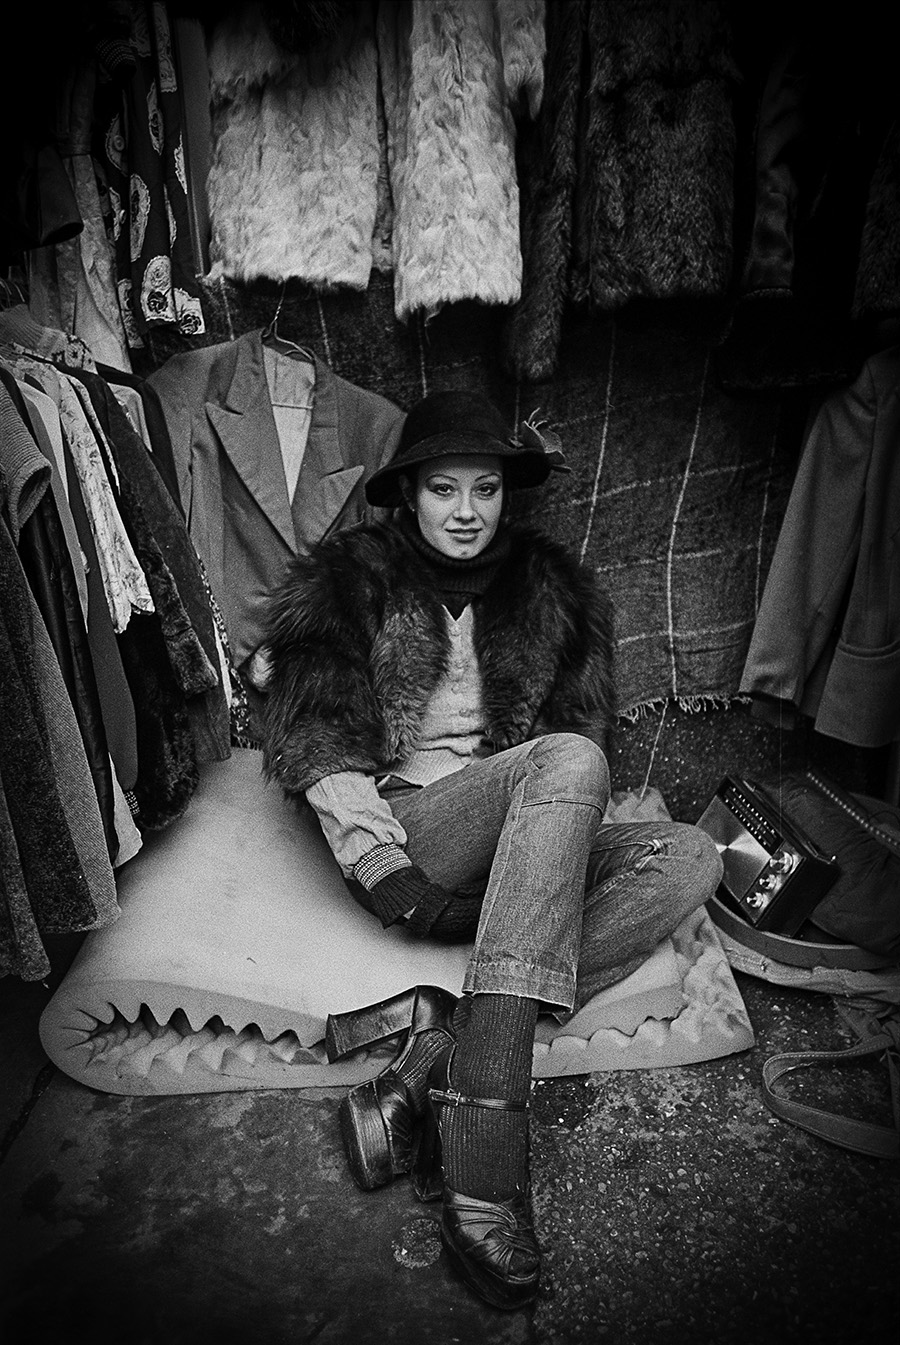 Fleemarket at Portobello Road, London 1974